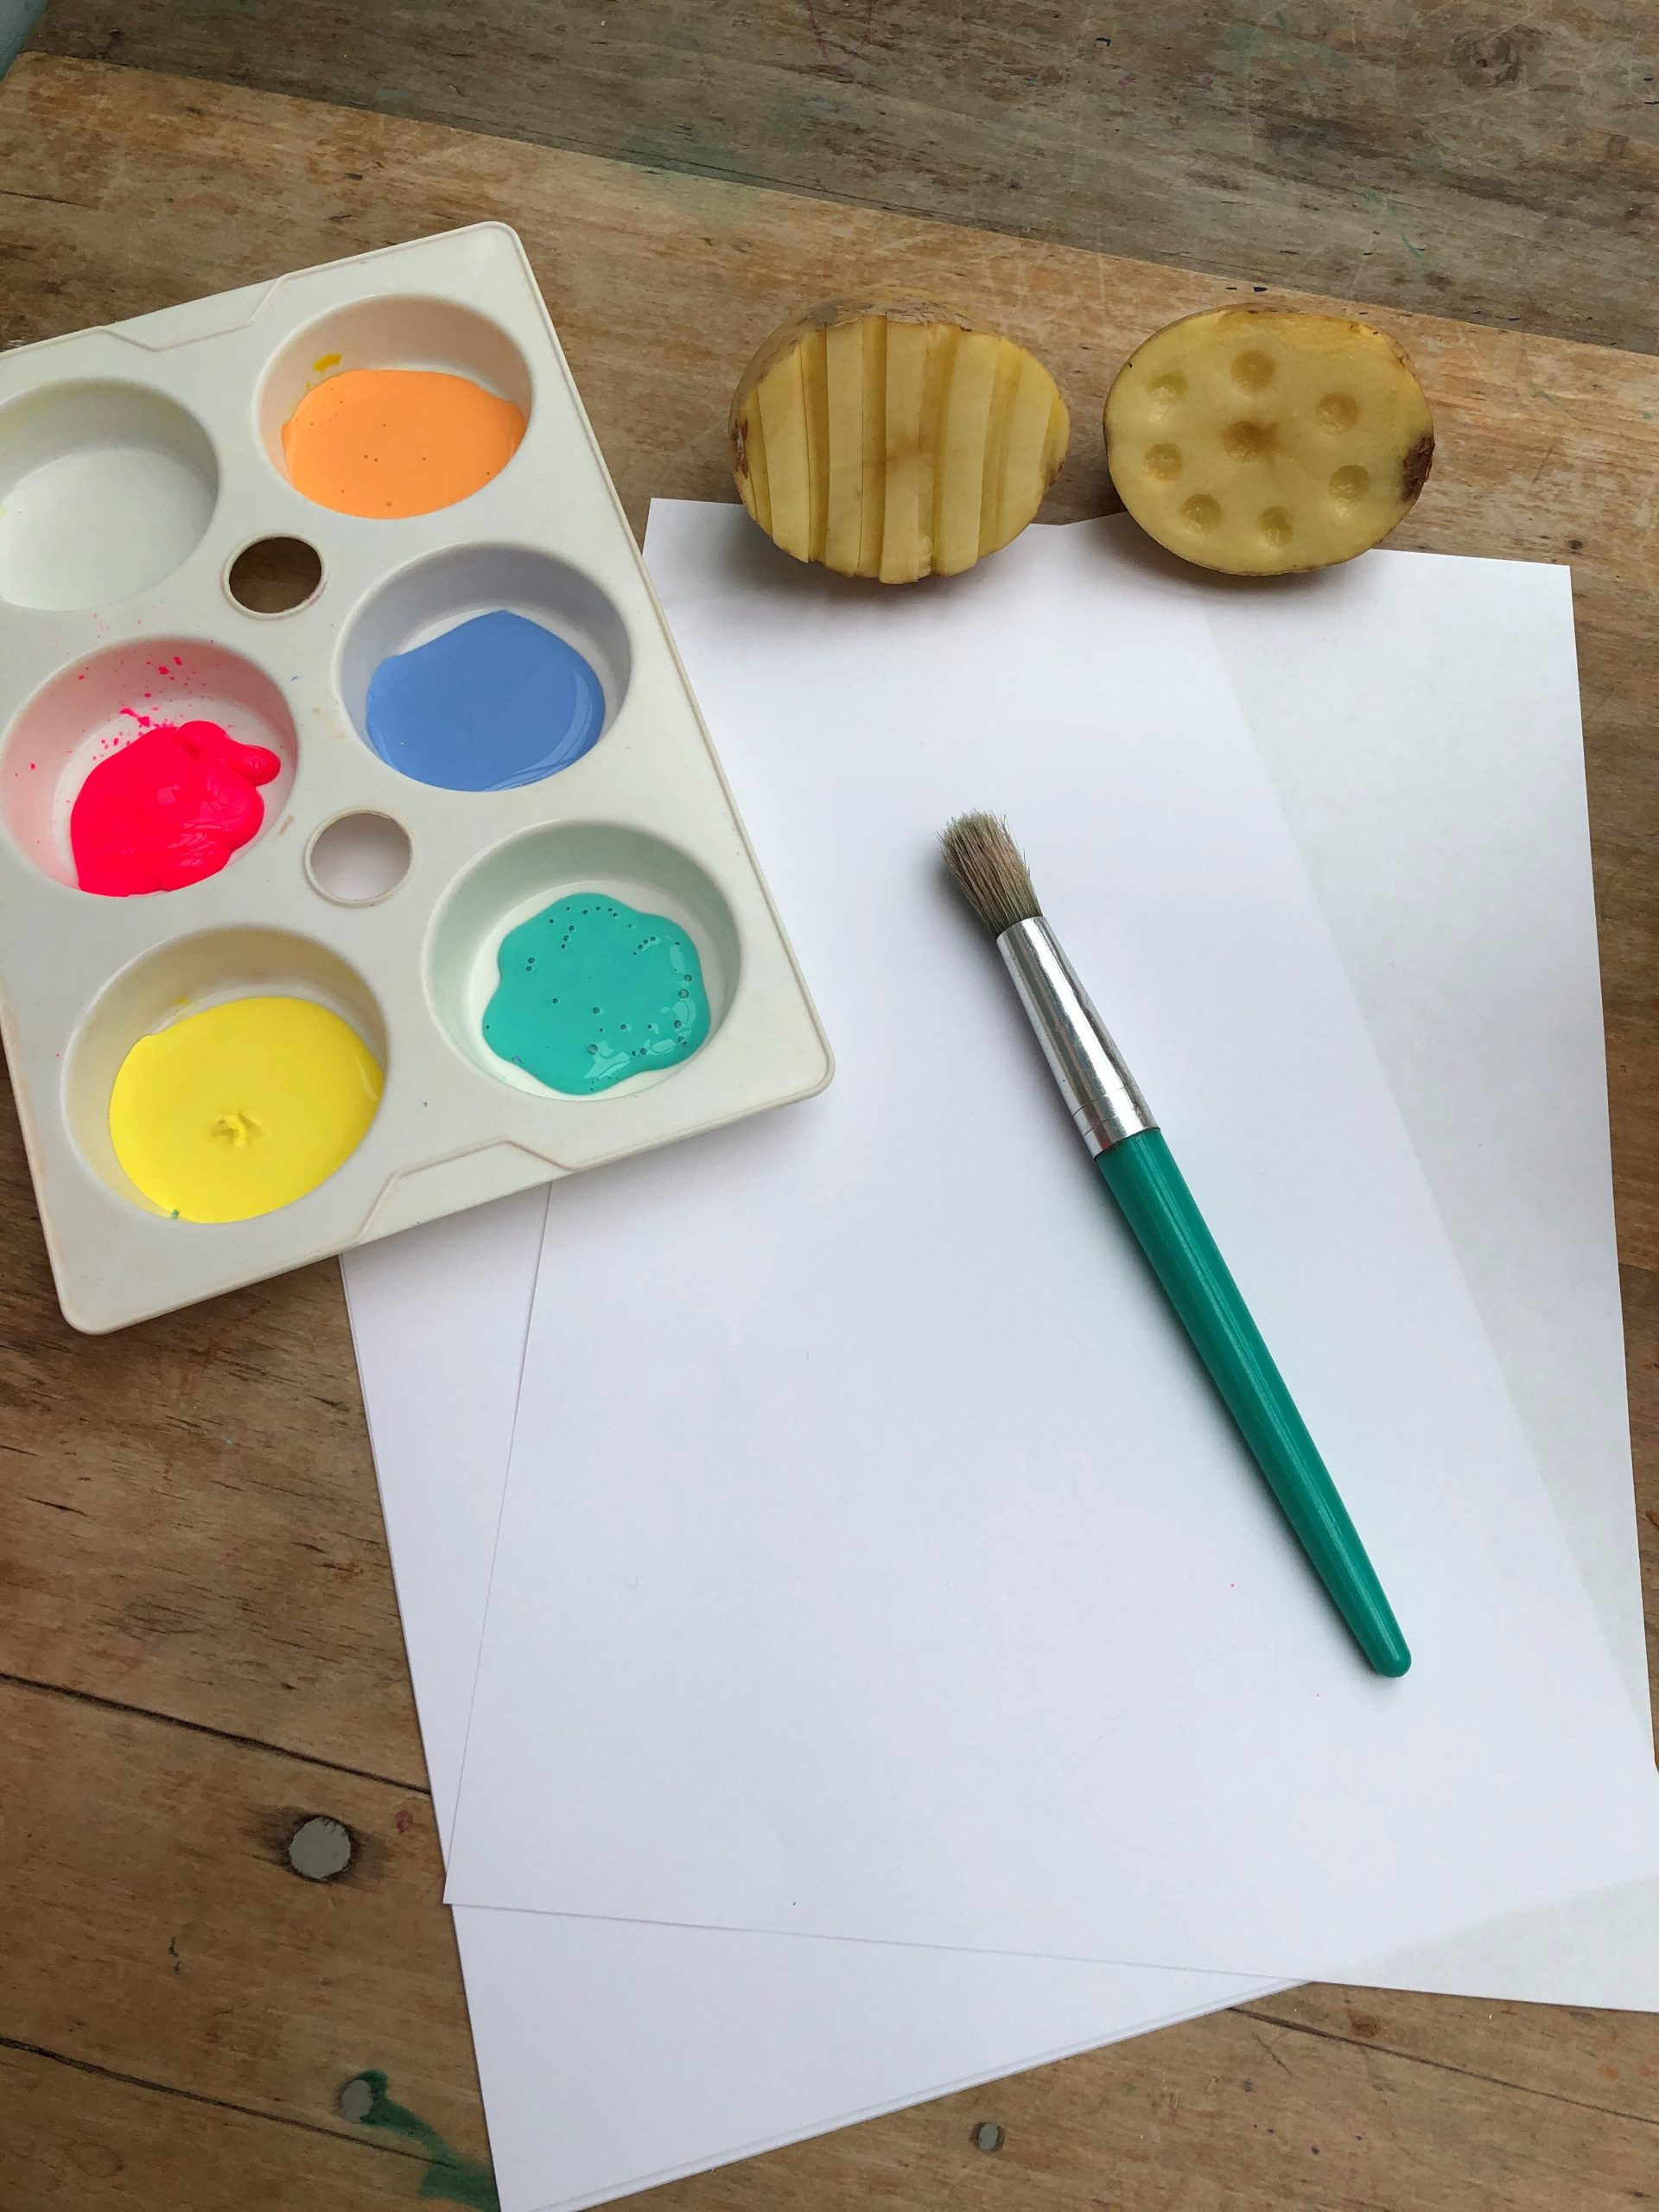 potatoe printing tools including paper, paint and paint brush and potatoes